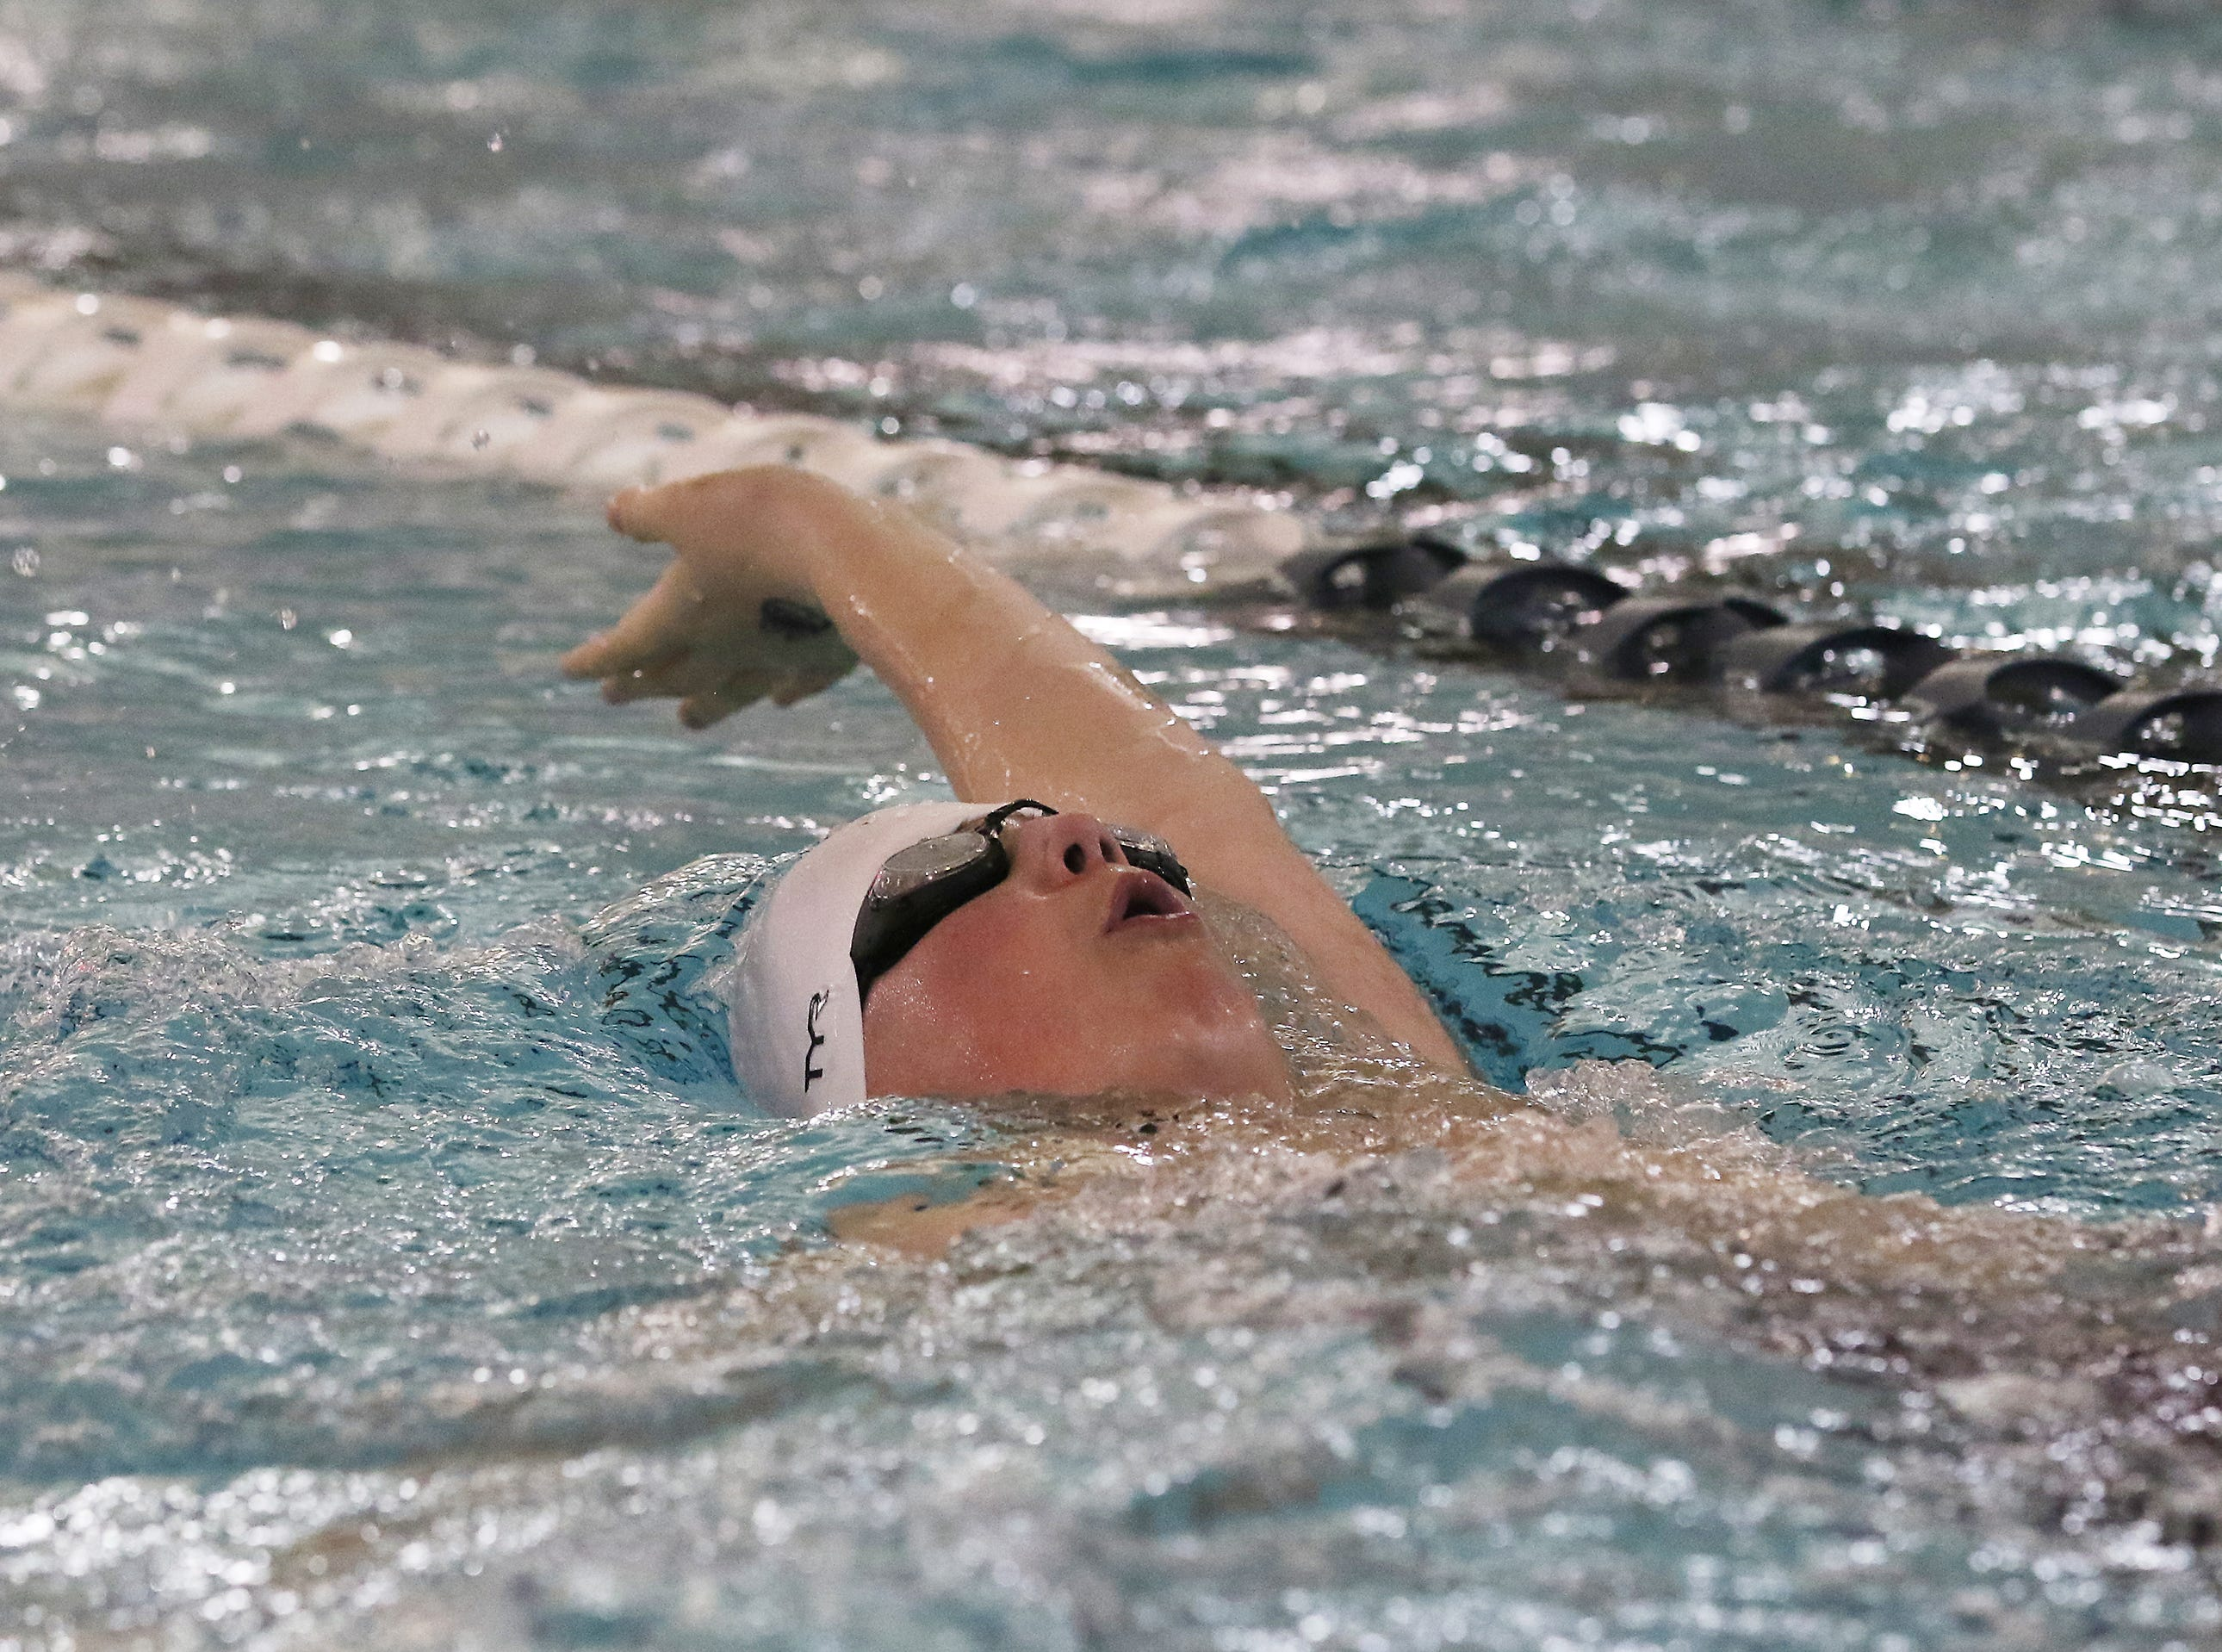 Middle School swimmers from a dozen schools gathered for the finale of the Muskingum Recreation Center Middle School Swim Meet Series at the MRC on Friday.